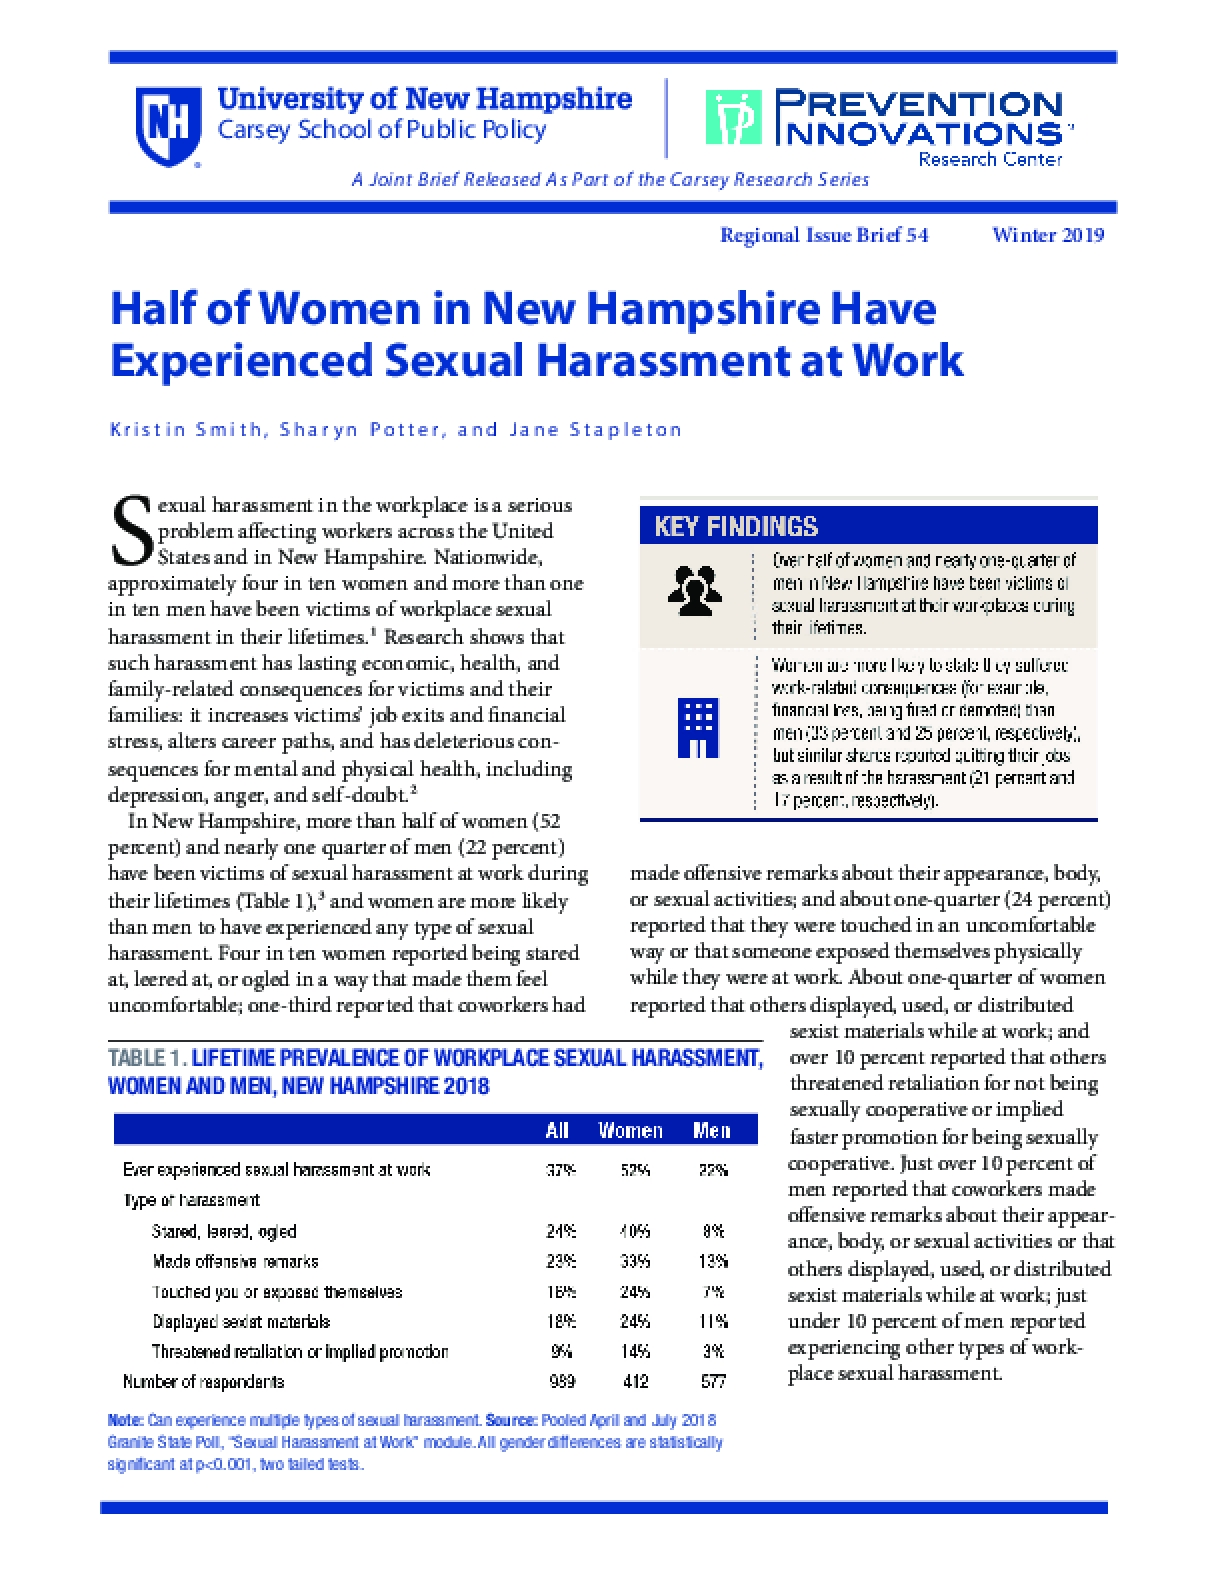 Half of Women in New Hampshire Have Experienced Sexual Harassment at Work